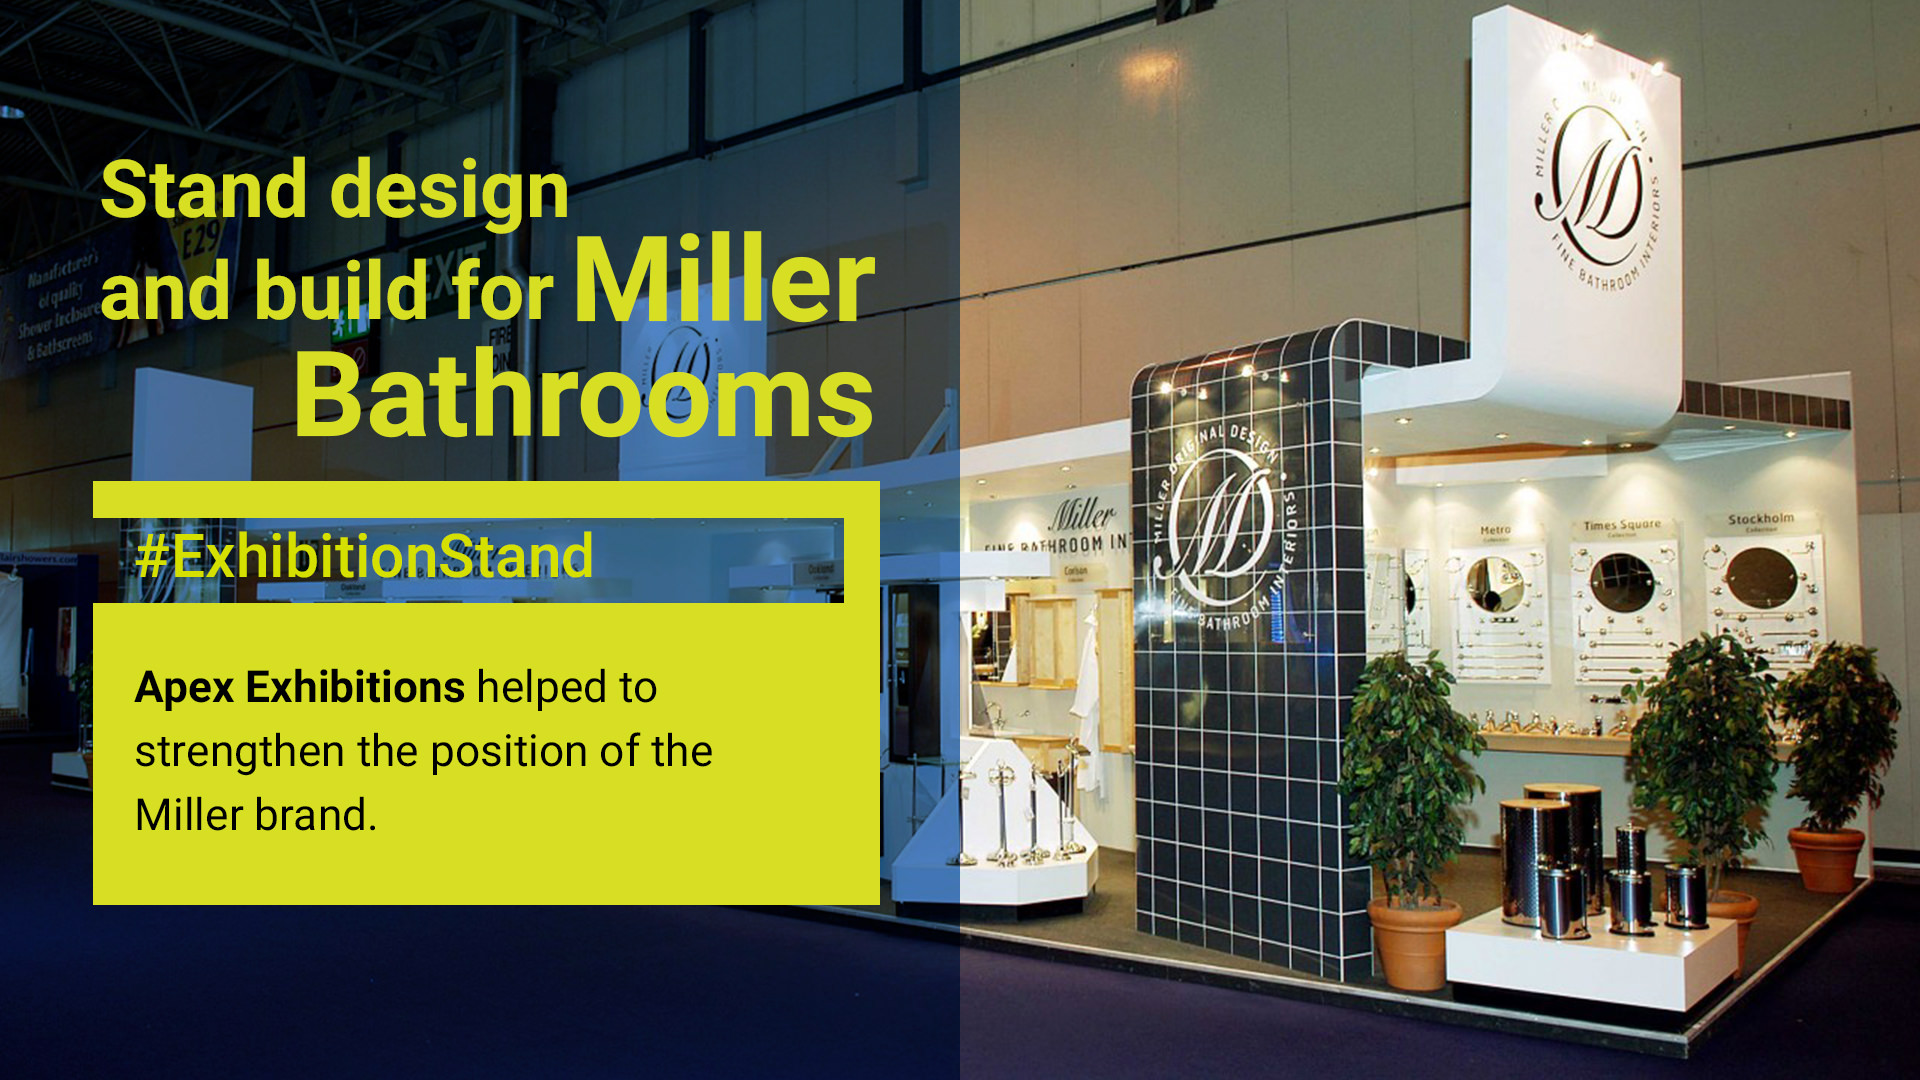 Miller bathrooms Custom Exhibition Stand Design